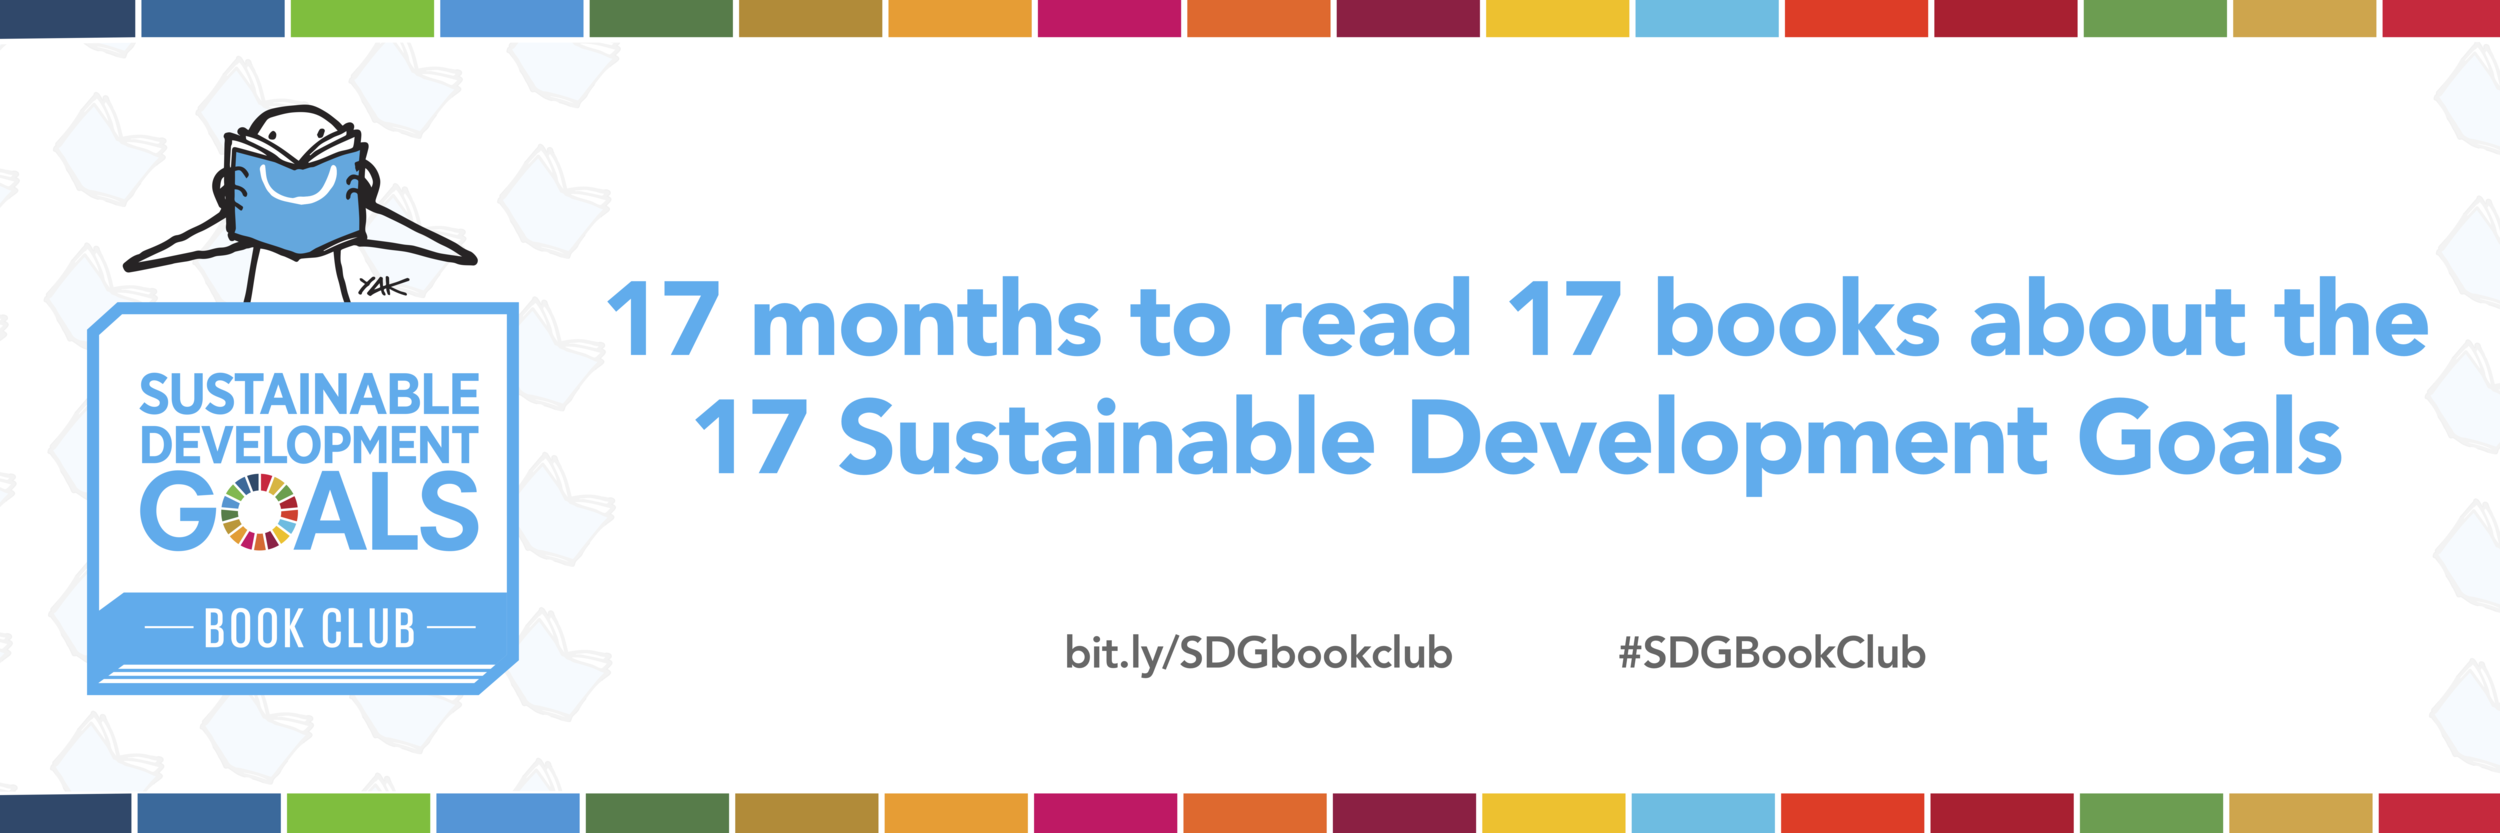 https://www.un.org/sustainabledevelopment/sdgbookclub/